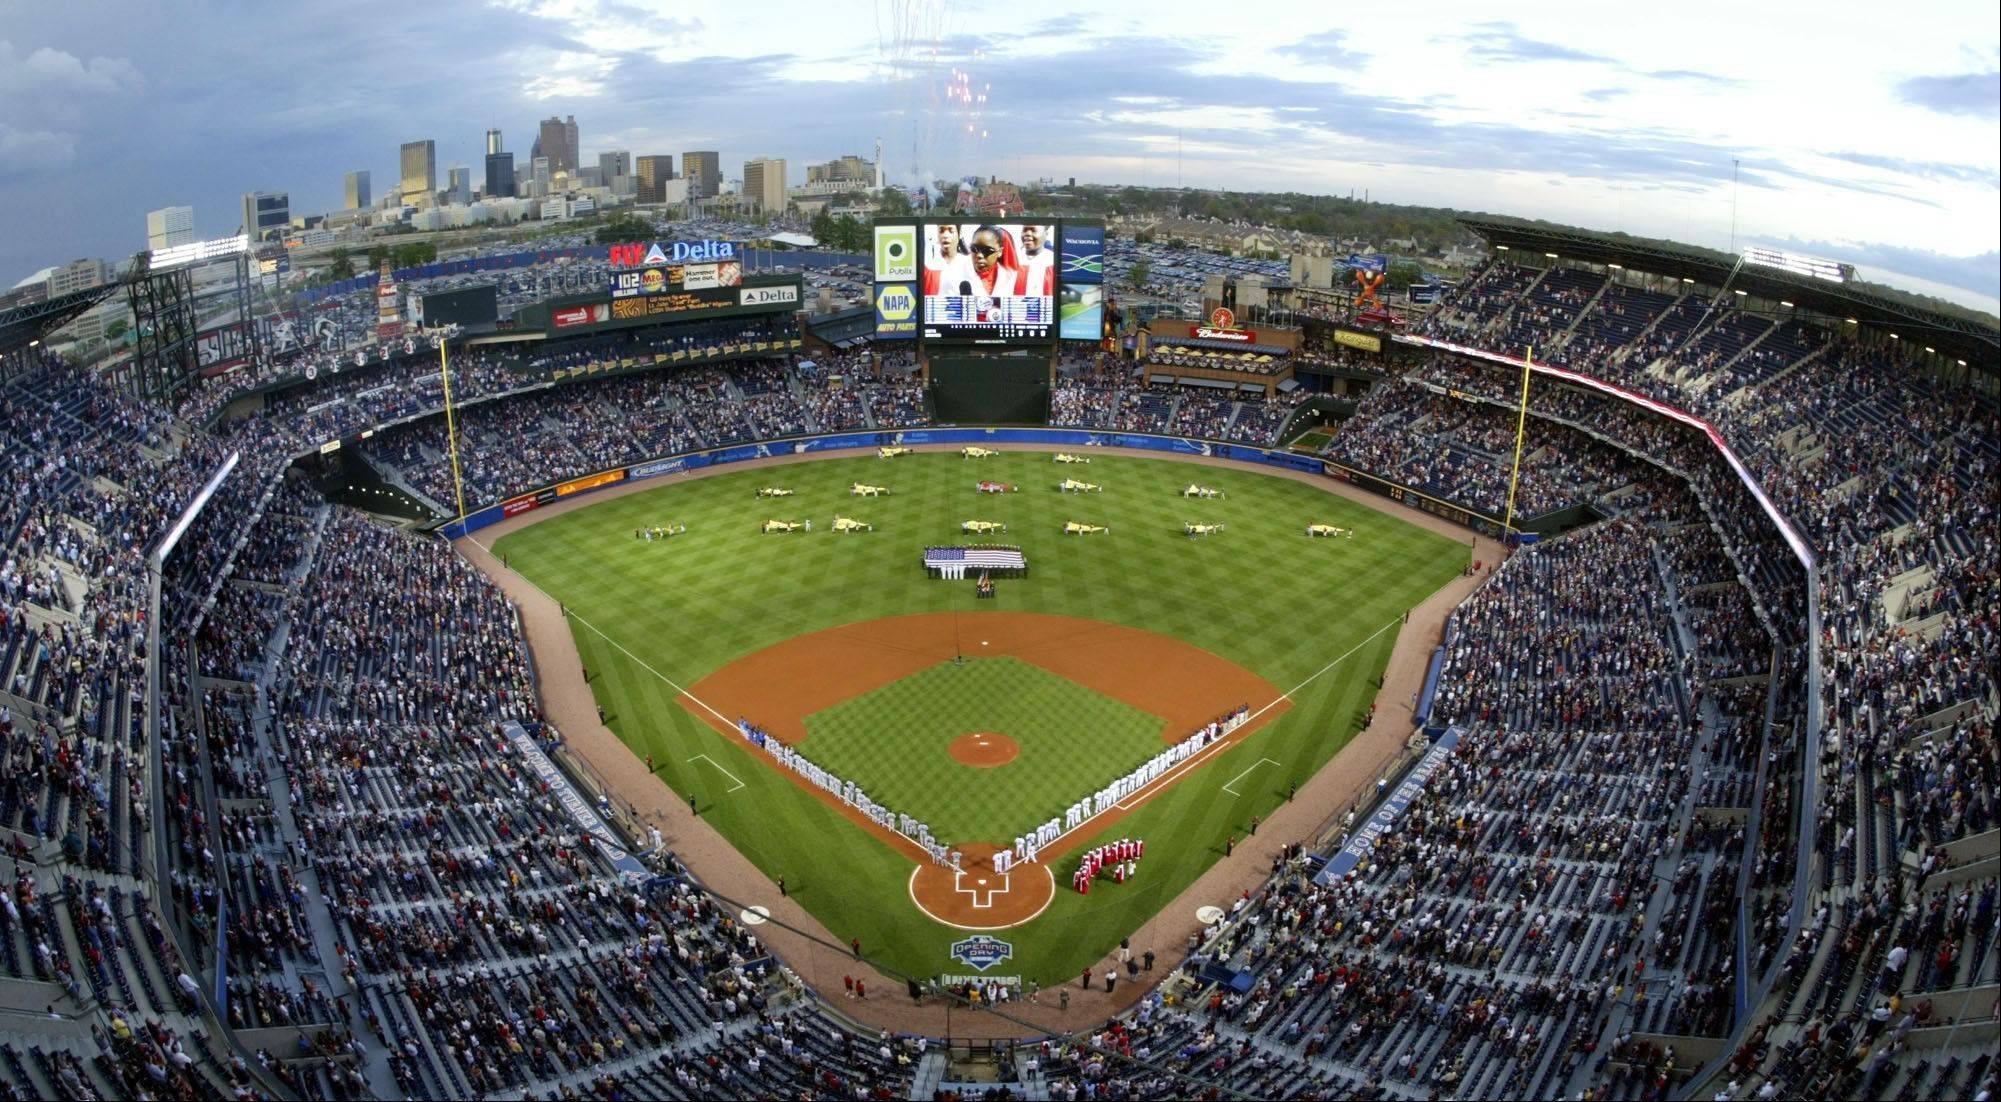 The Atlanta Braves have decided not to seek another 20-year lease at Turner Field.